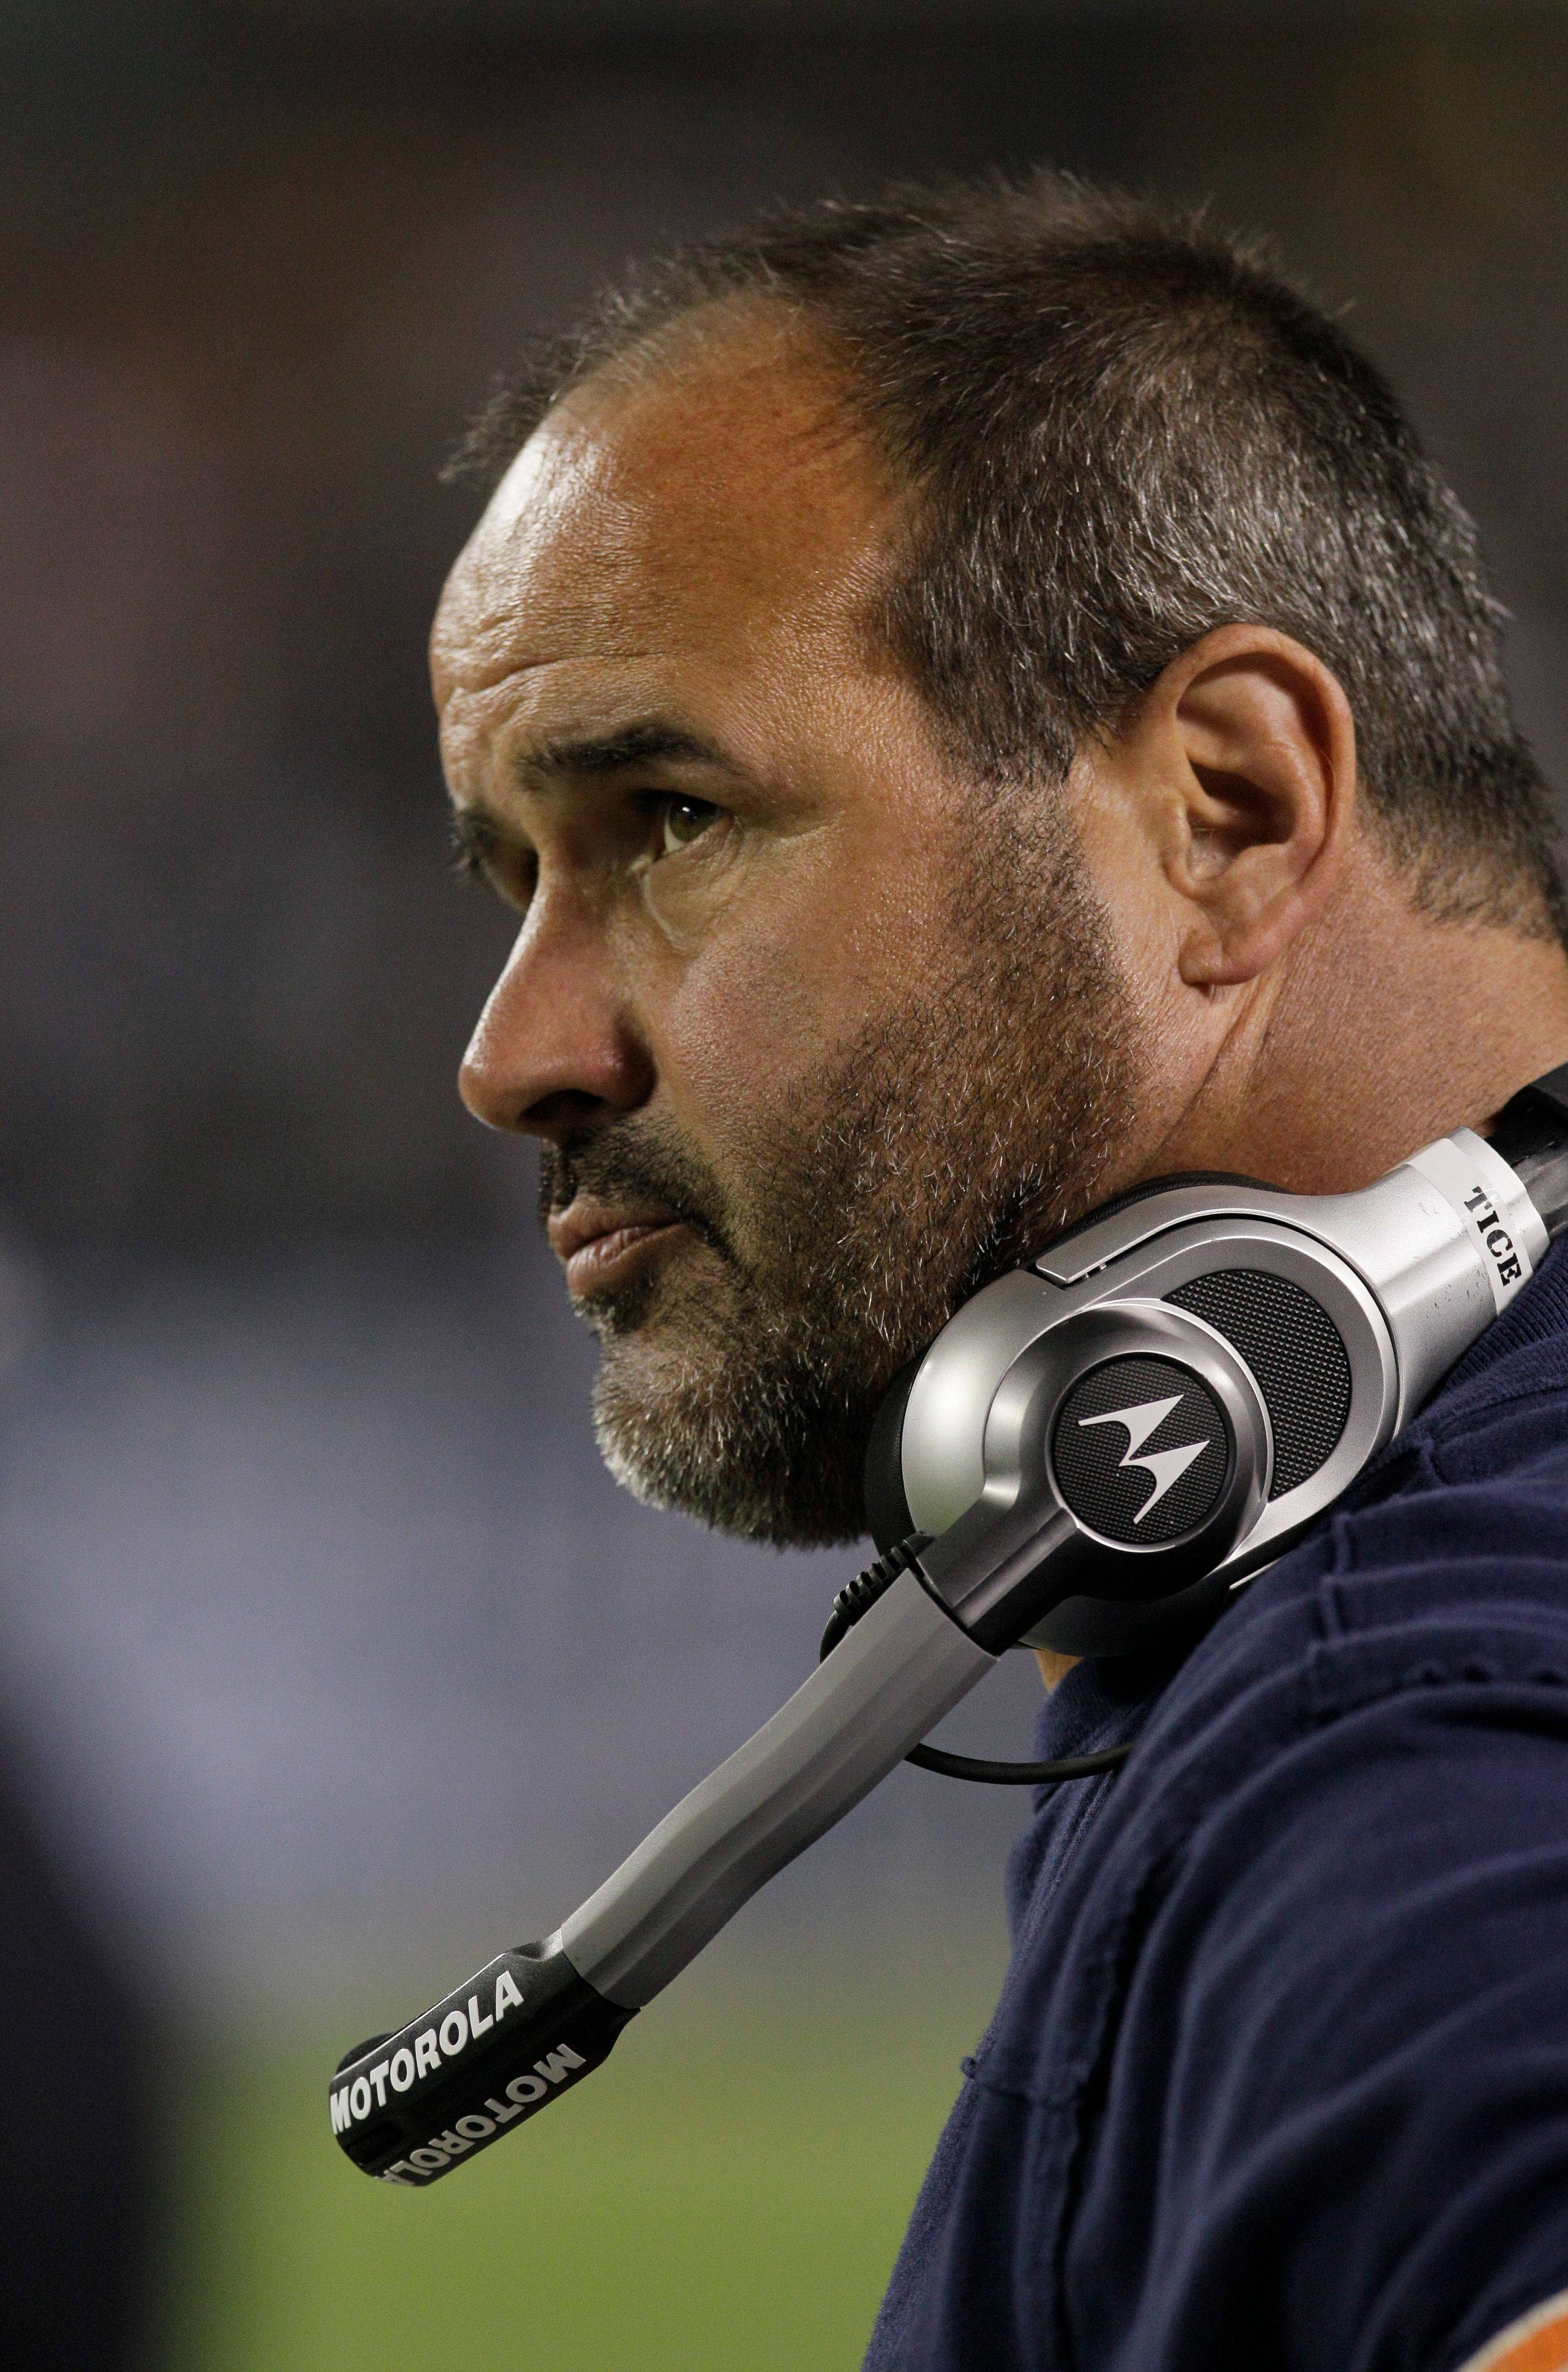 Chicago Bears offensive line coach Mike Tice is seen before an NFL football game Monday, Sept. 27, 2010, in Chicago.